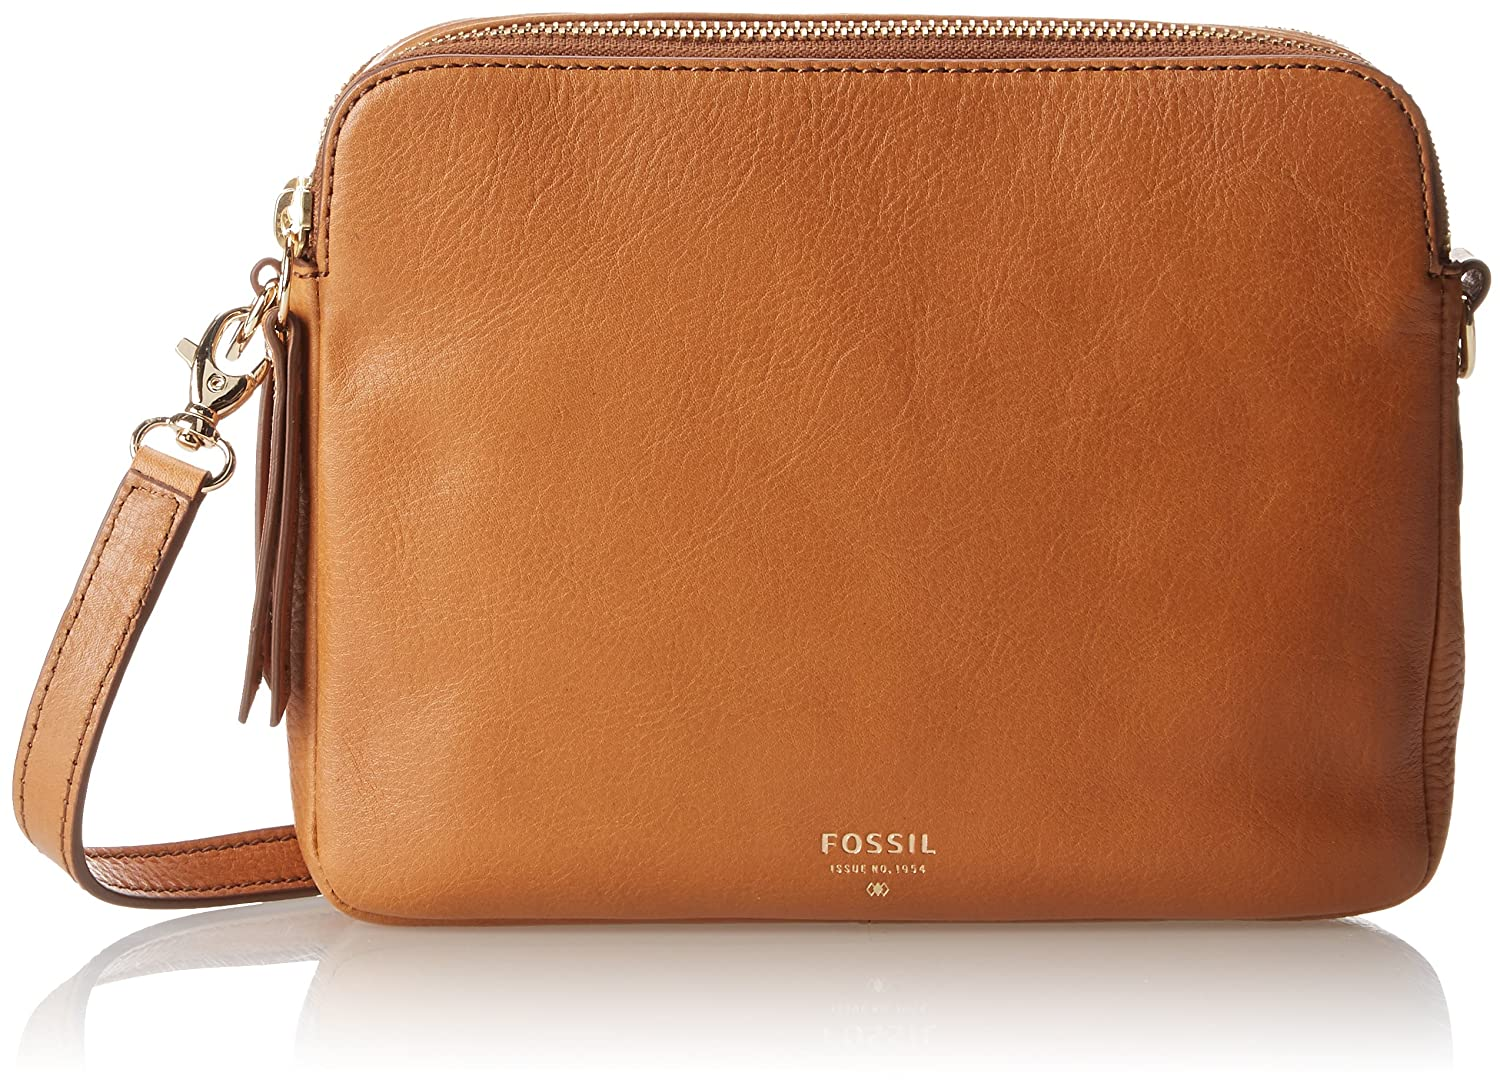 Fossil Sydney2 Cross Body Bag,Camel,One Size